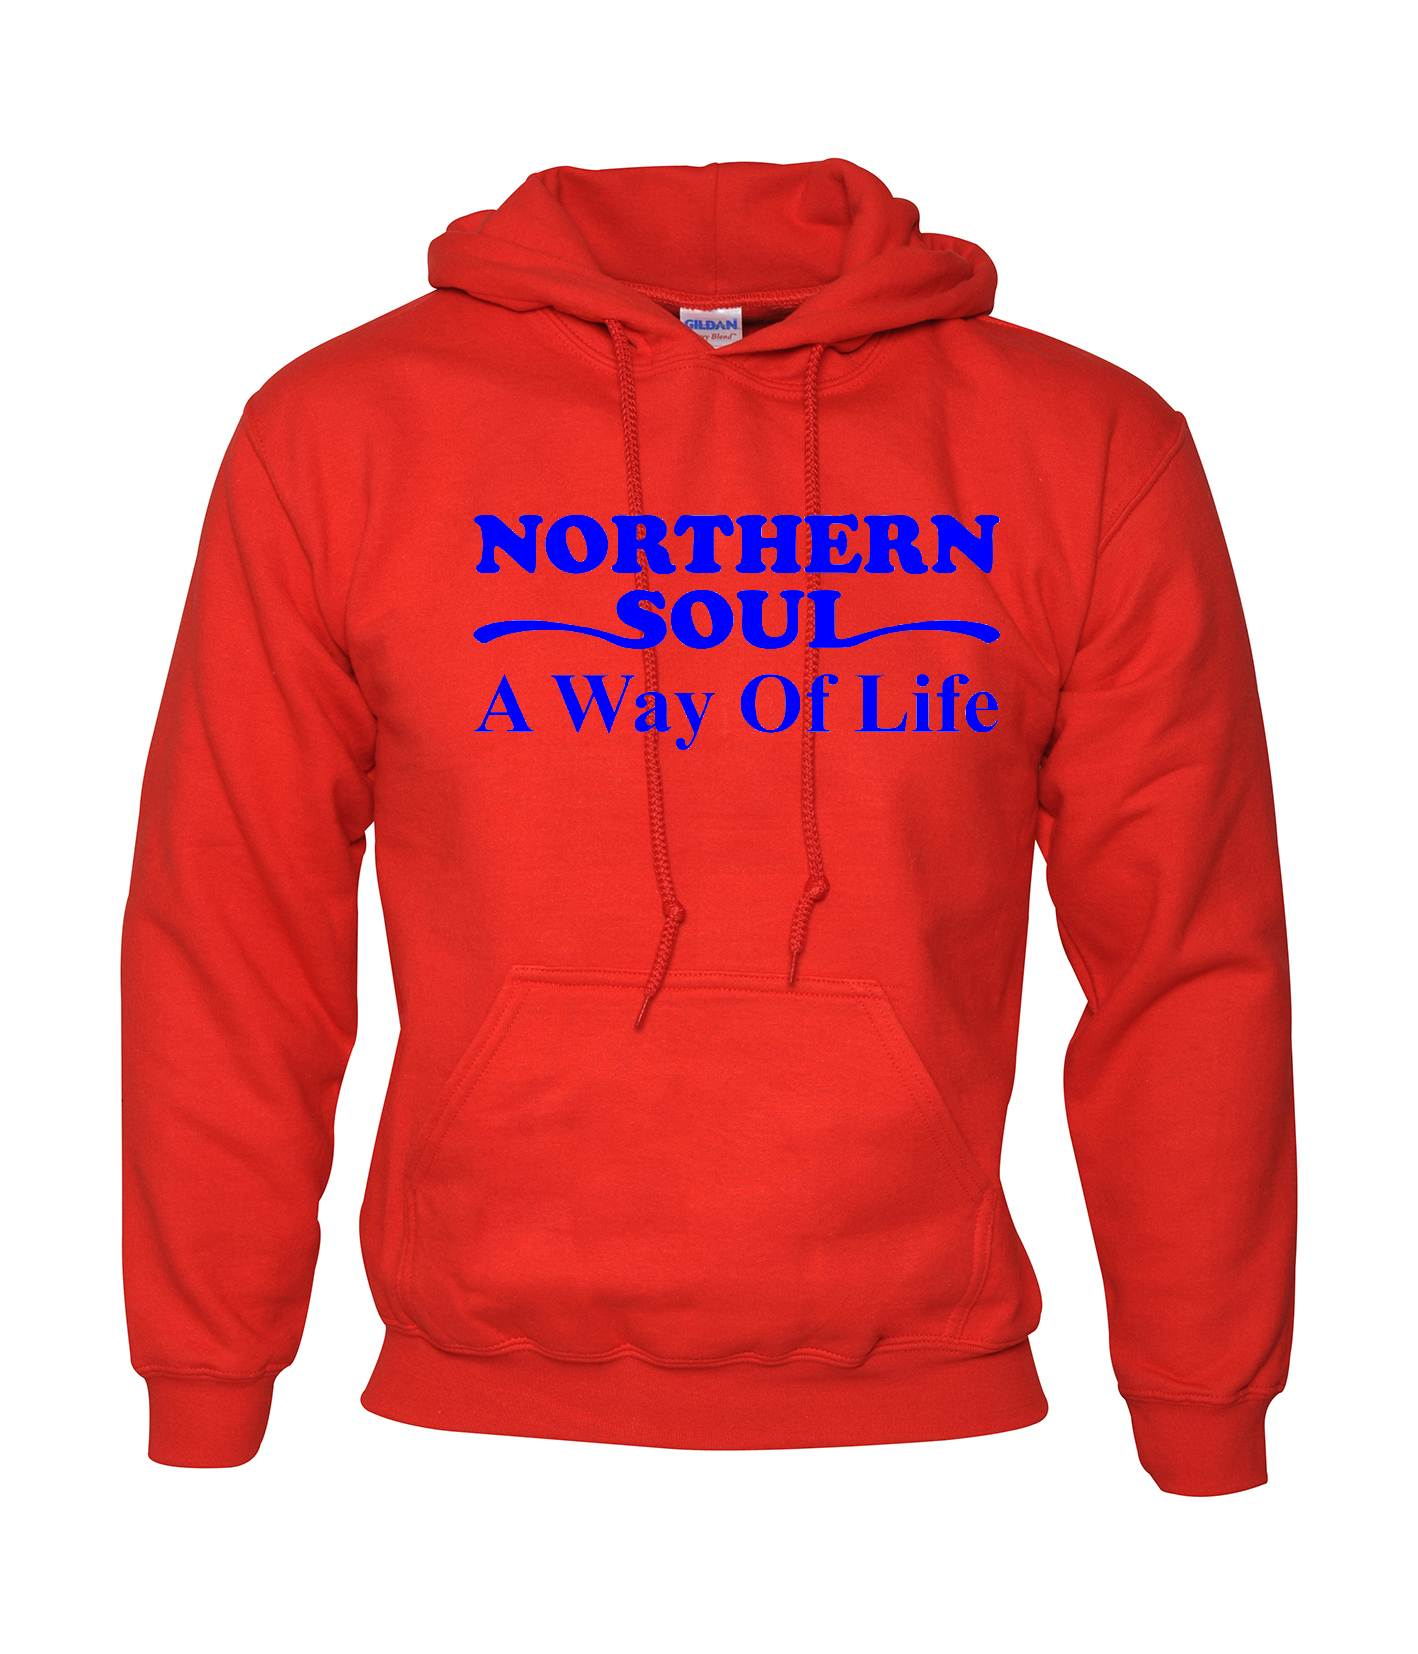 Northern Soul Way of Life Hoodie